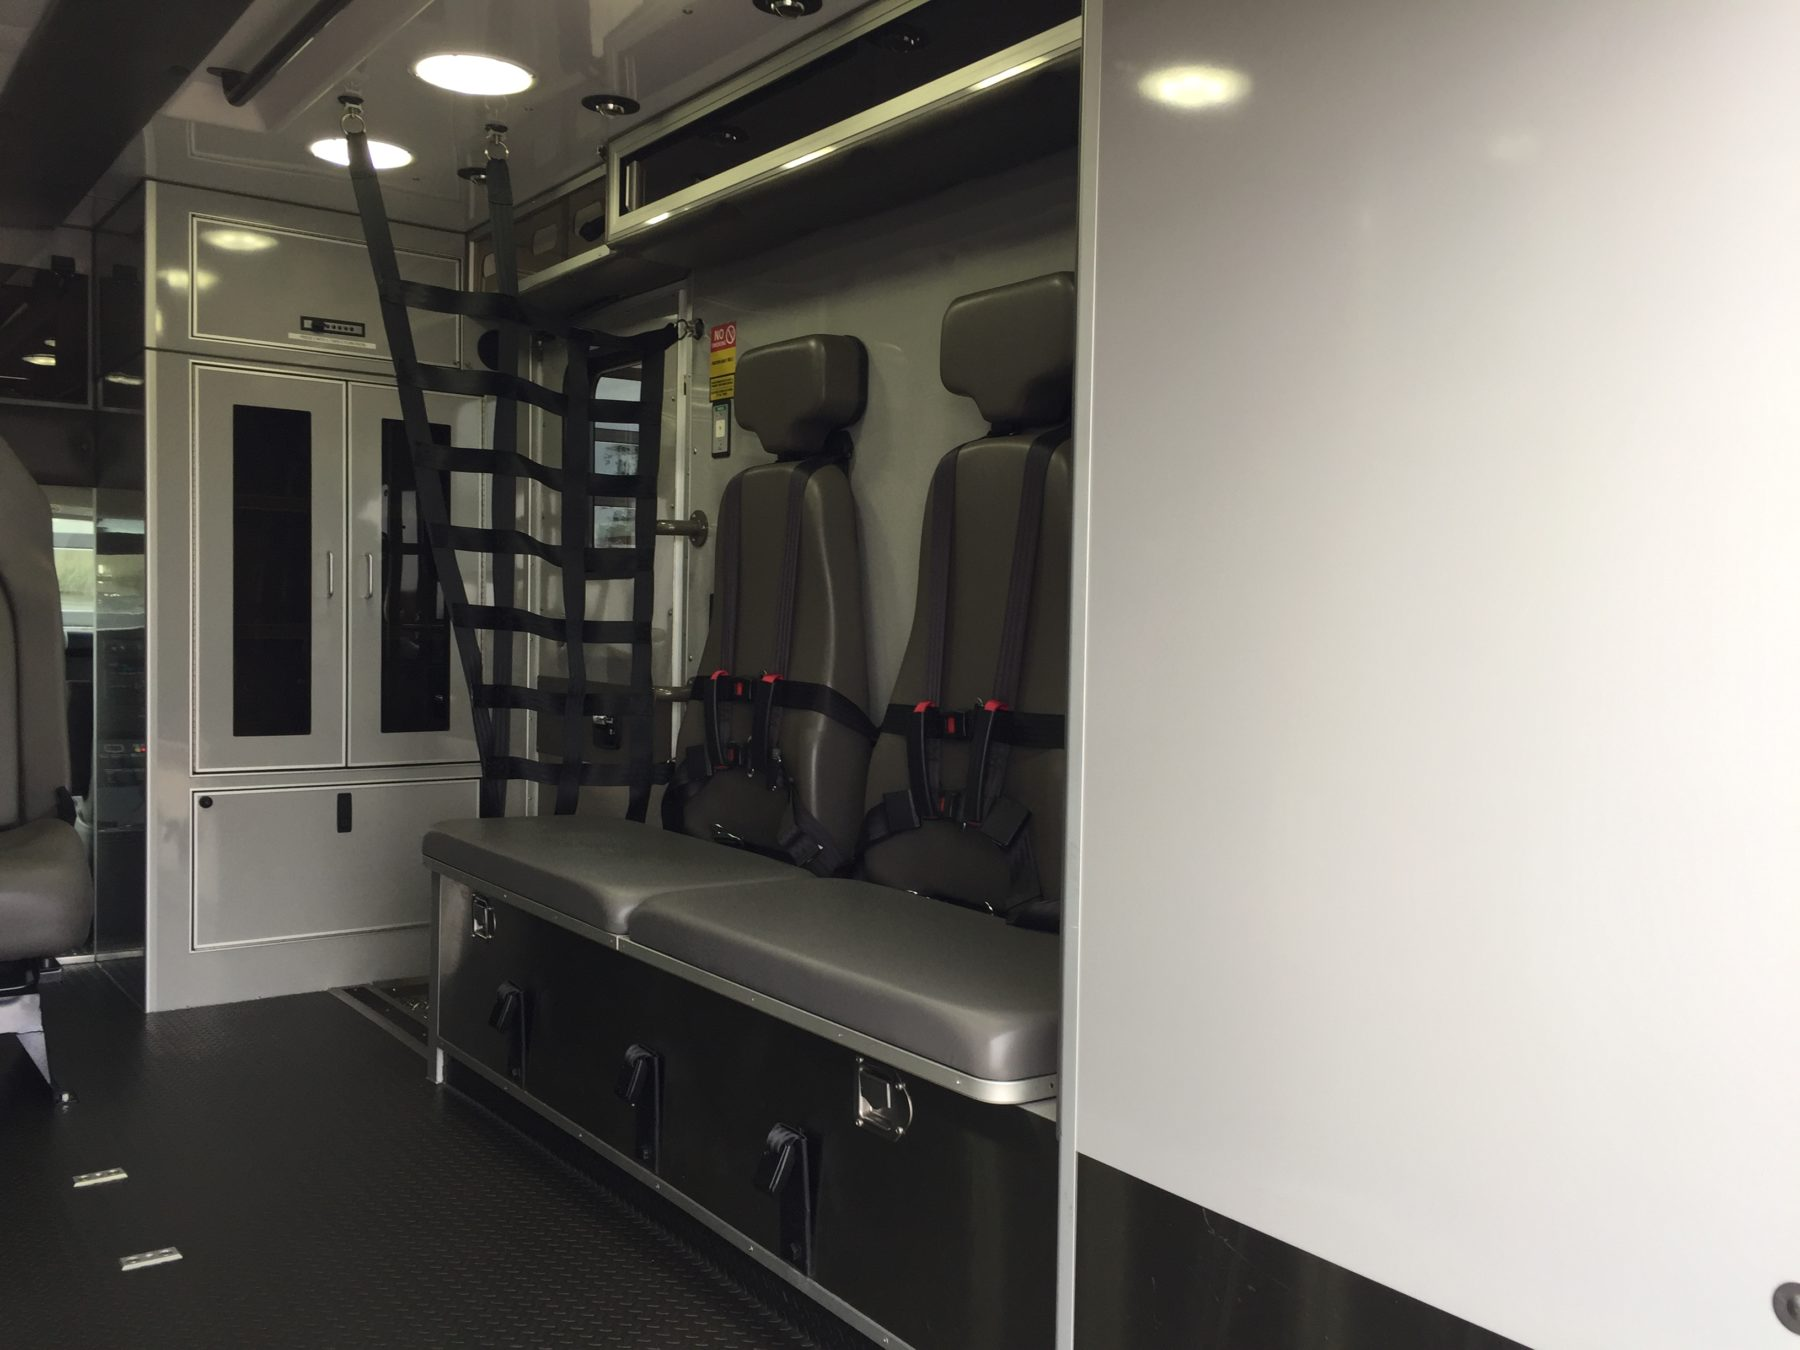 2019 Chevrolet G4500 Type 3 Ambulance For Sale – Picture 13